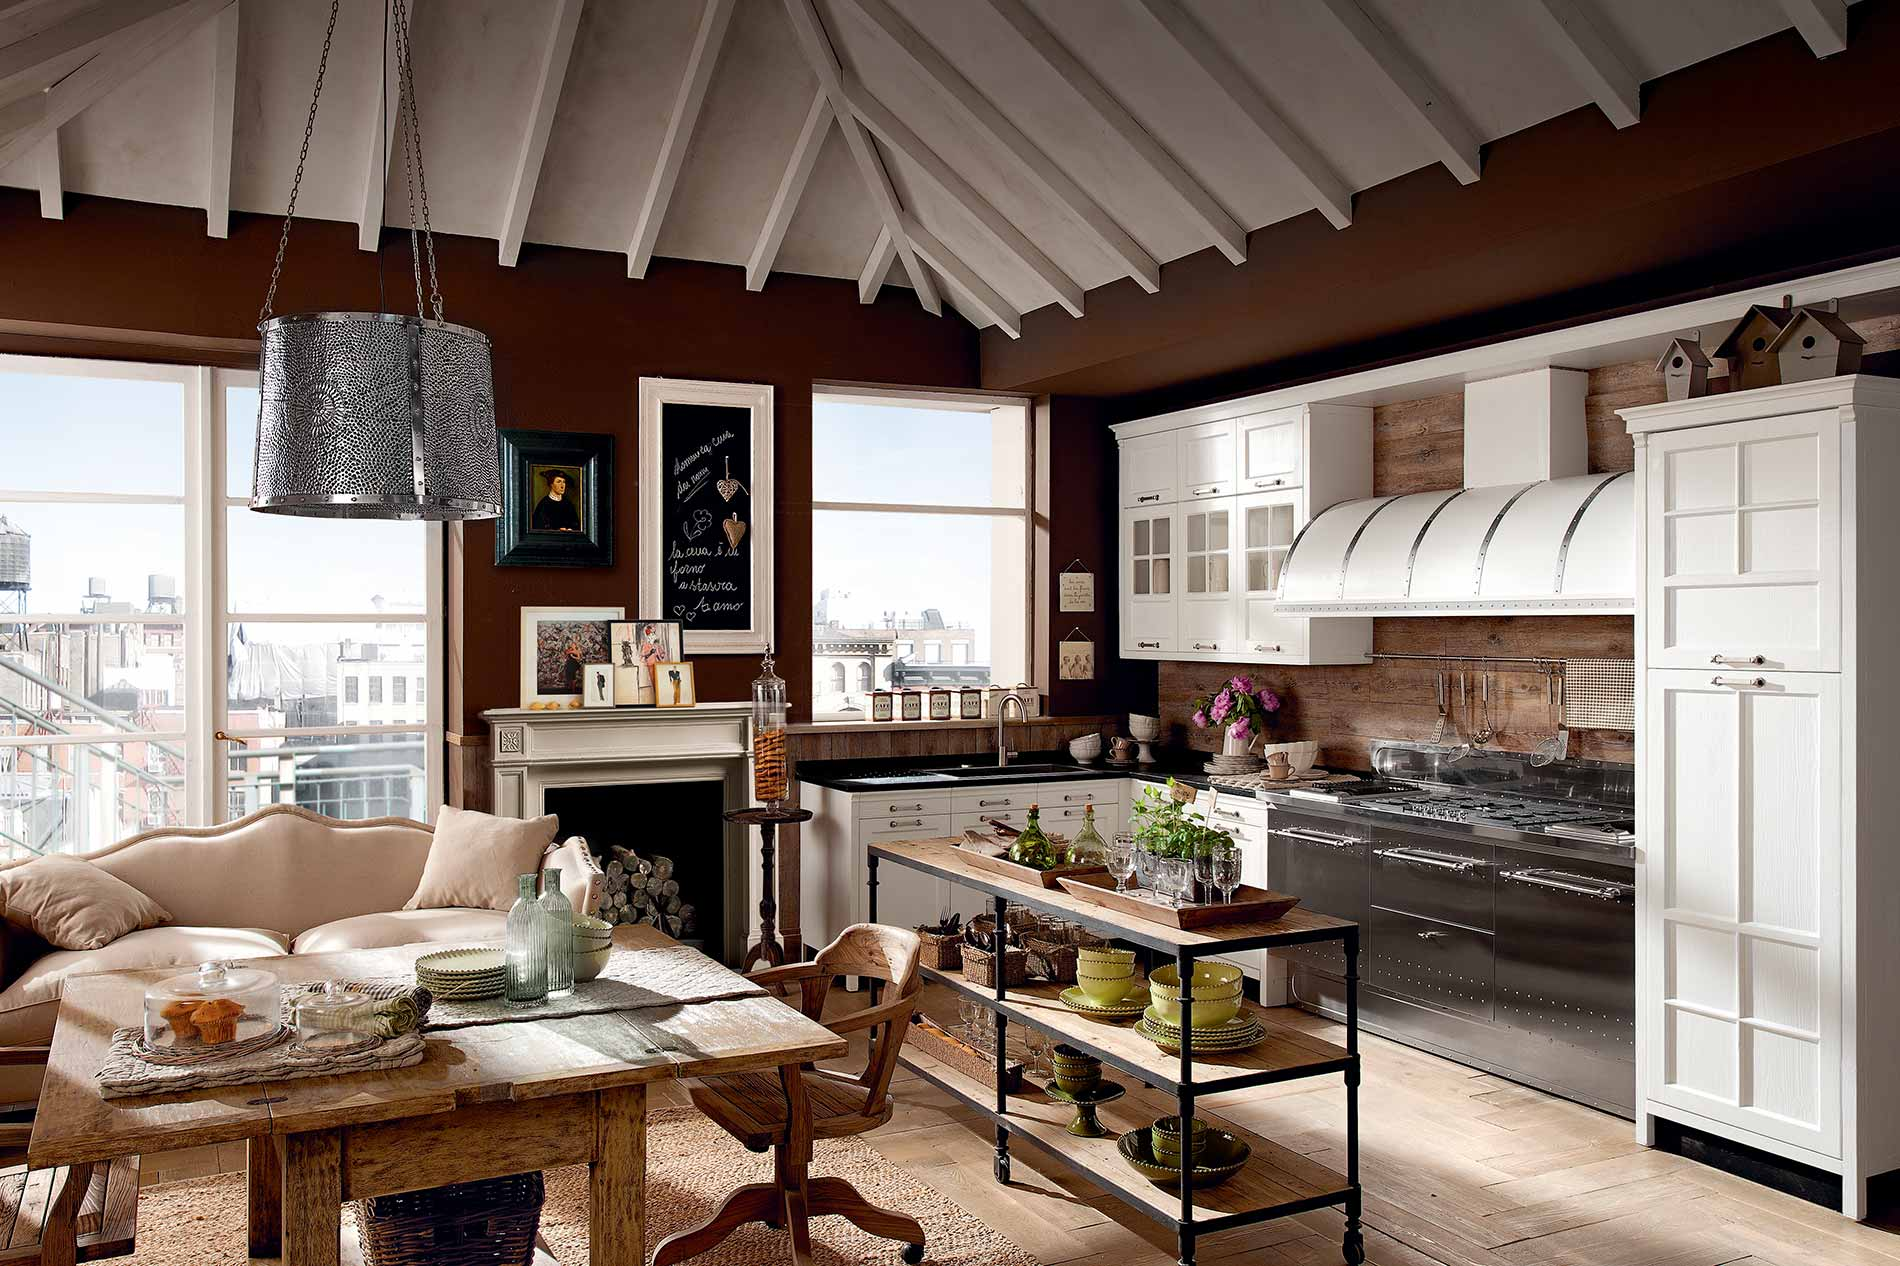 Kreola - Marchi Cucine Made in Italy